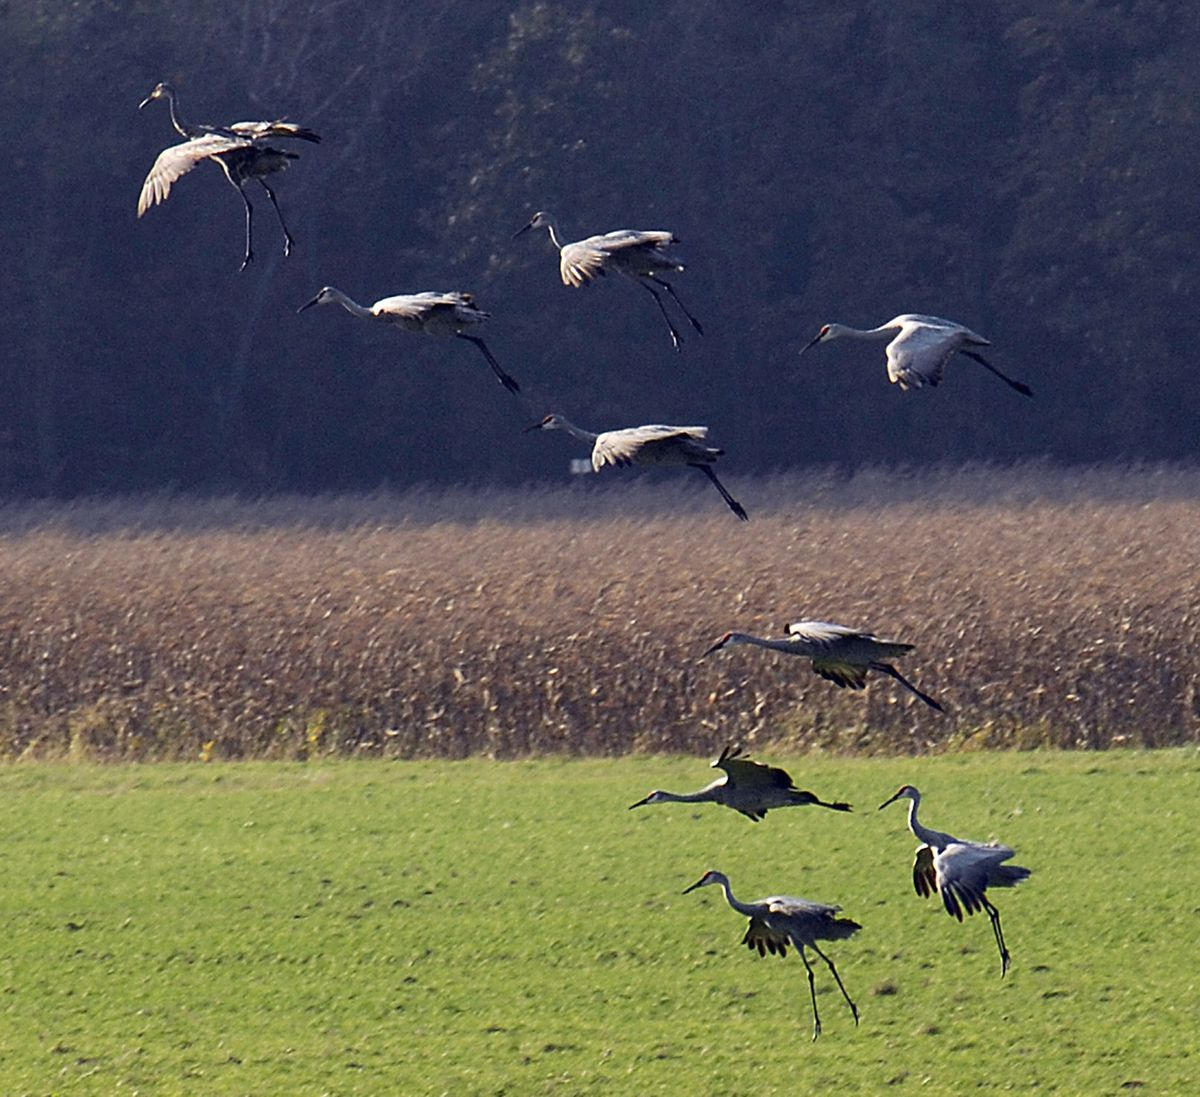 Sandhill cranes at the Jasper-Pulaski Fish & Wildlife Area in northern Indiana, a popular stop for the migratory birds.